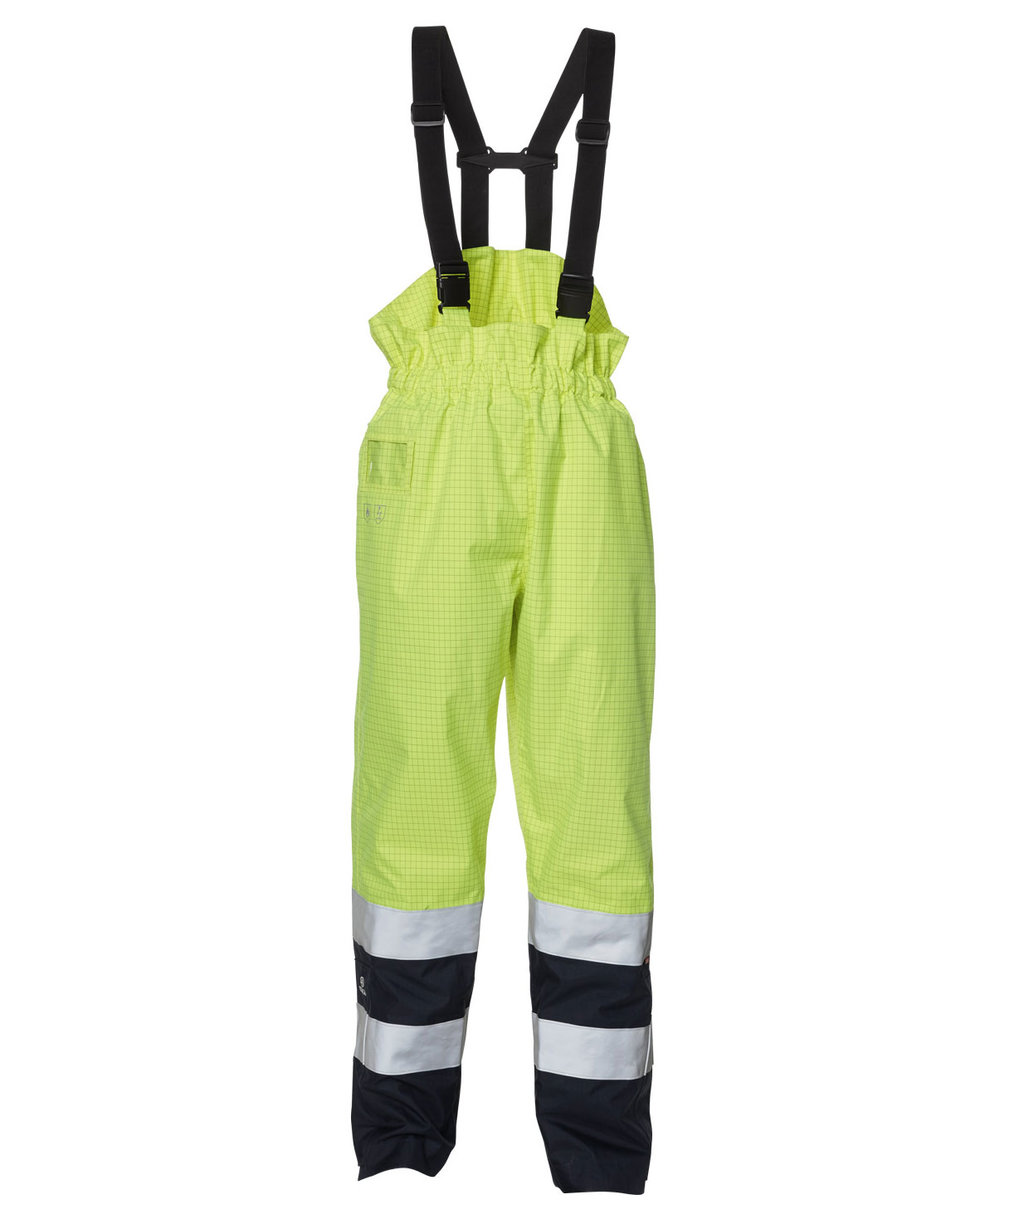 Elka Securetech Multinorm overalls, Hi-Vis Gul/Navy